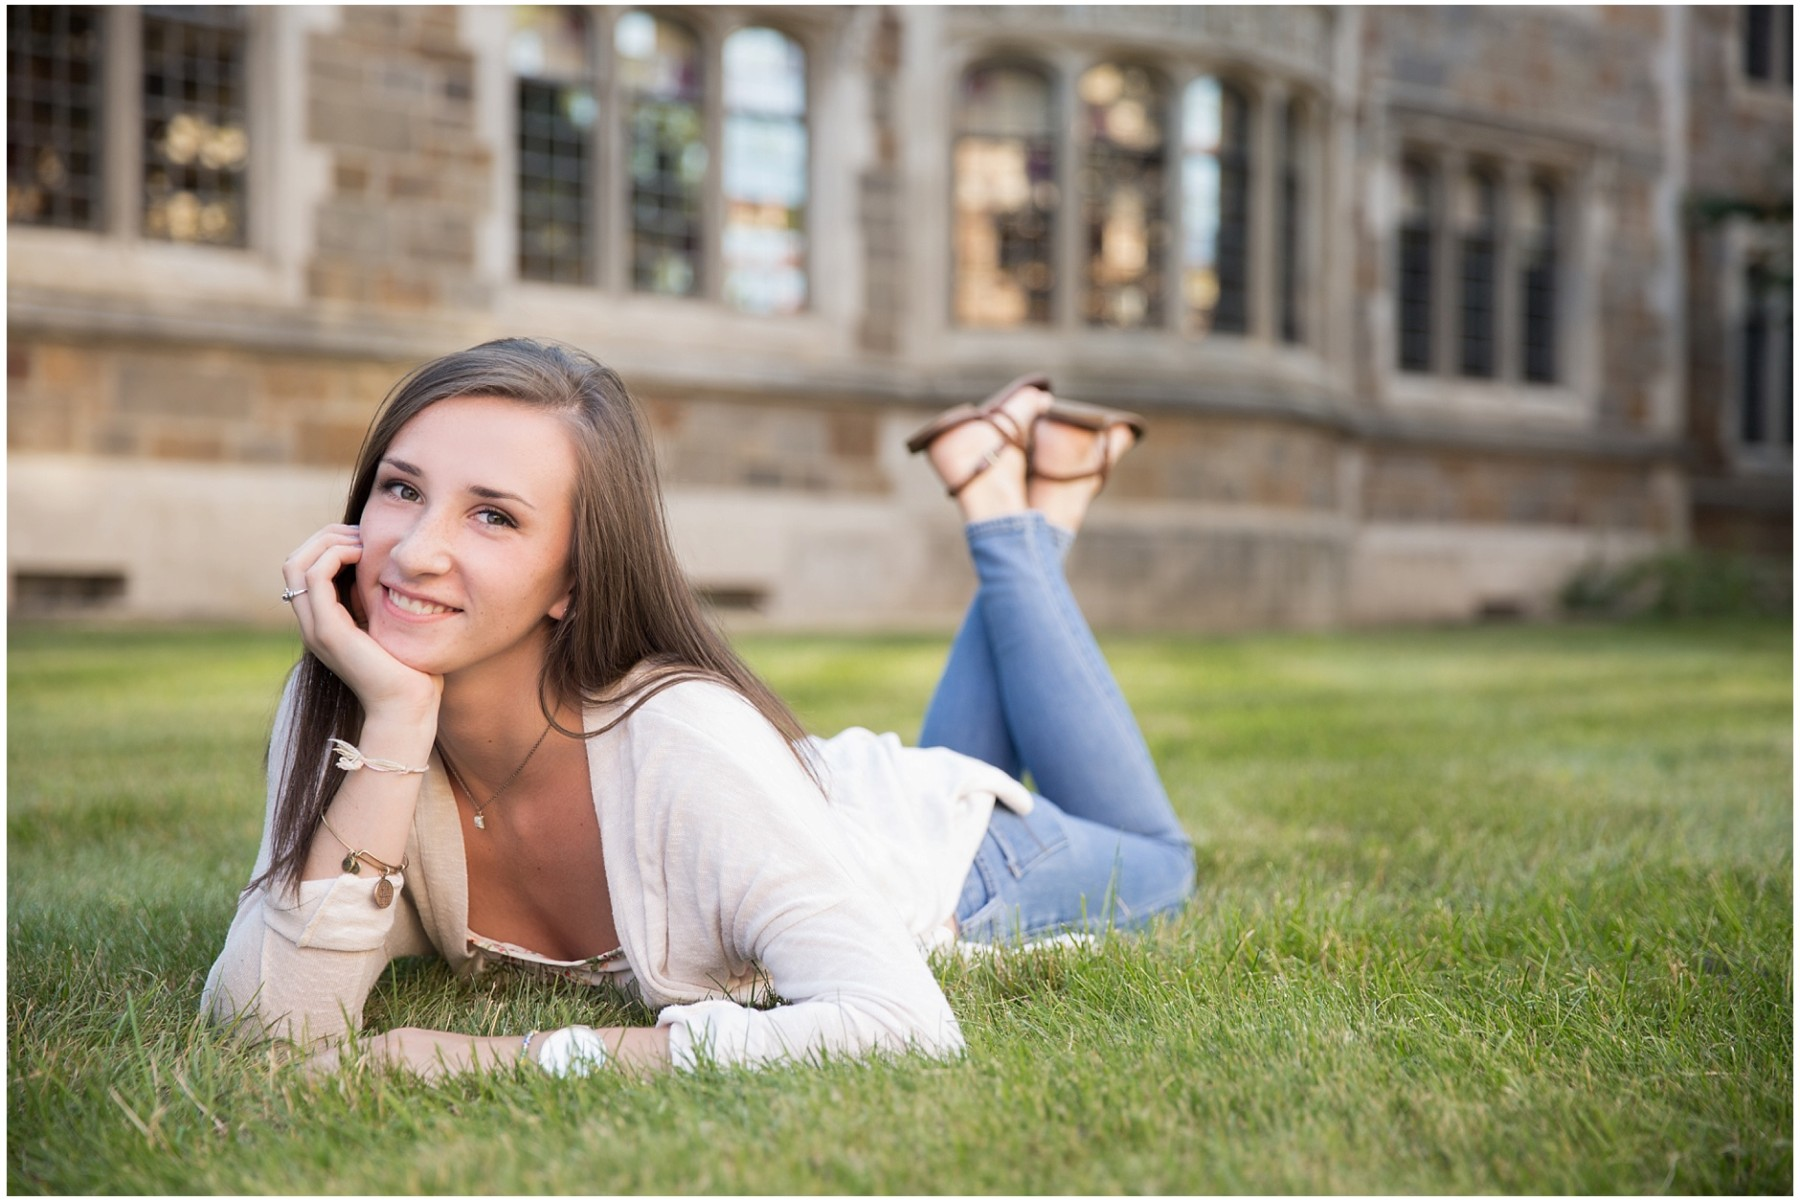 Sarah // High School Senior // Portrait Photographer Ann Arbor, MI